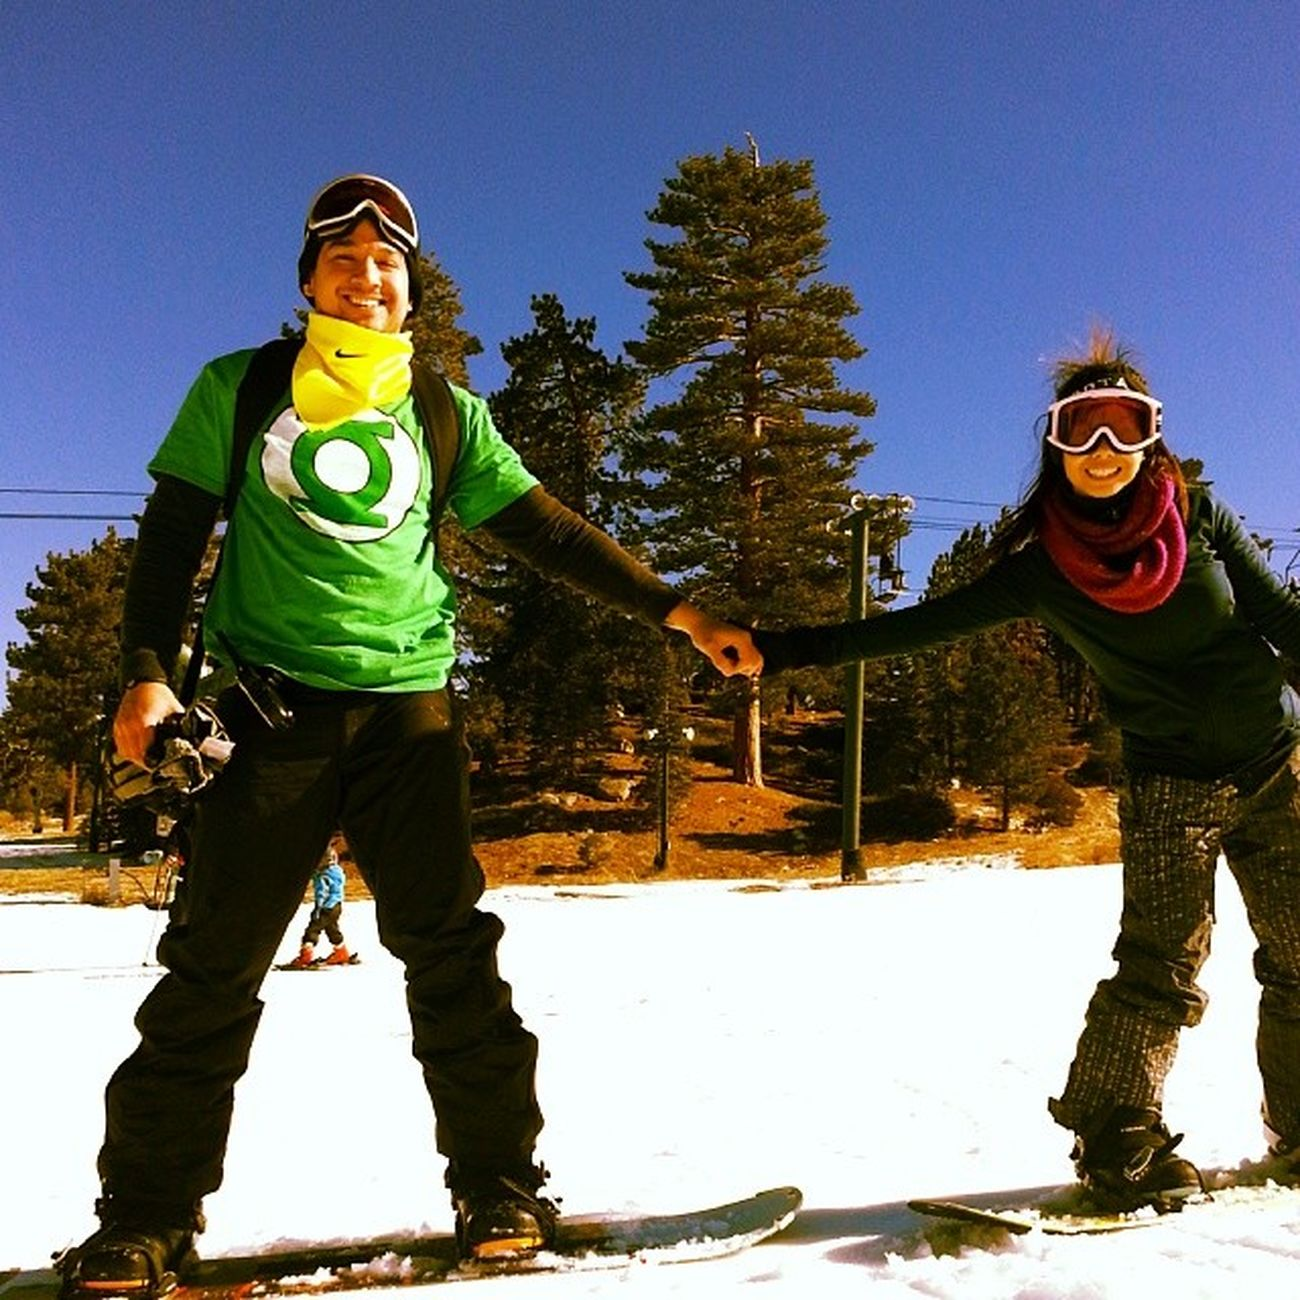 Me and my snowbunny @ivyg0. Snowboarding Handholding Hardtotakepicturesonsnowboards Newobsession andmynumberoneobsession